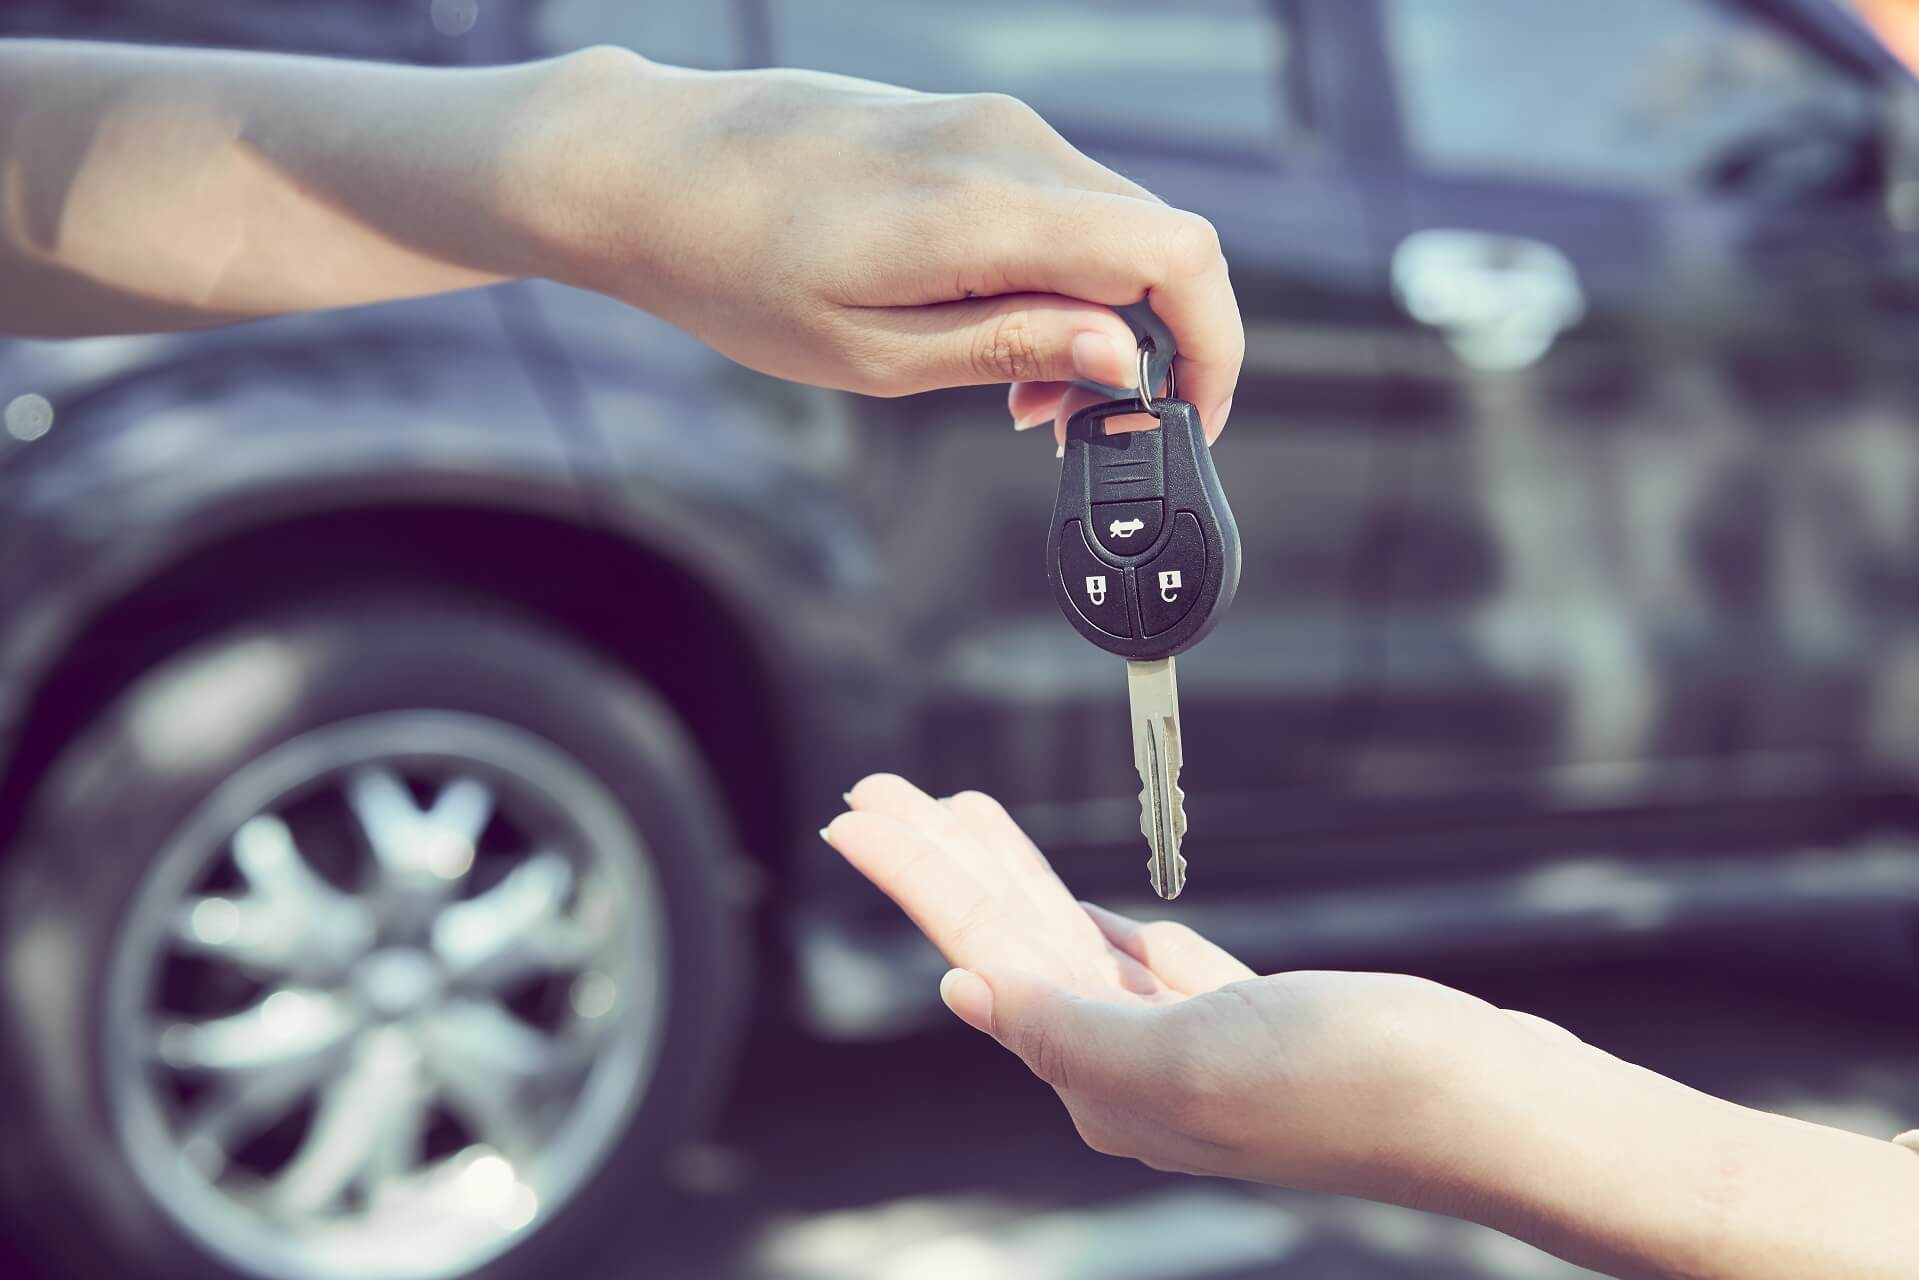 Things To Consider Before Hiring A Vehicle To Earn Money